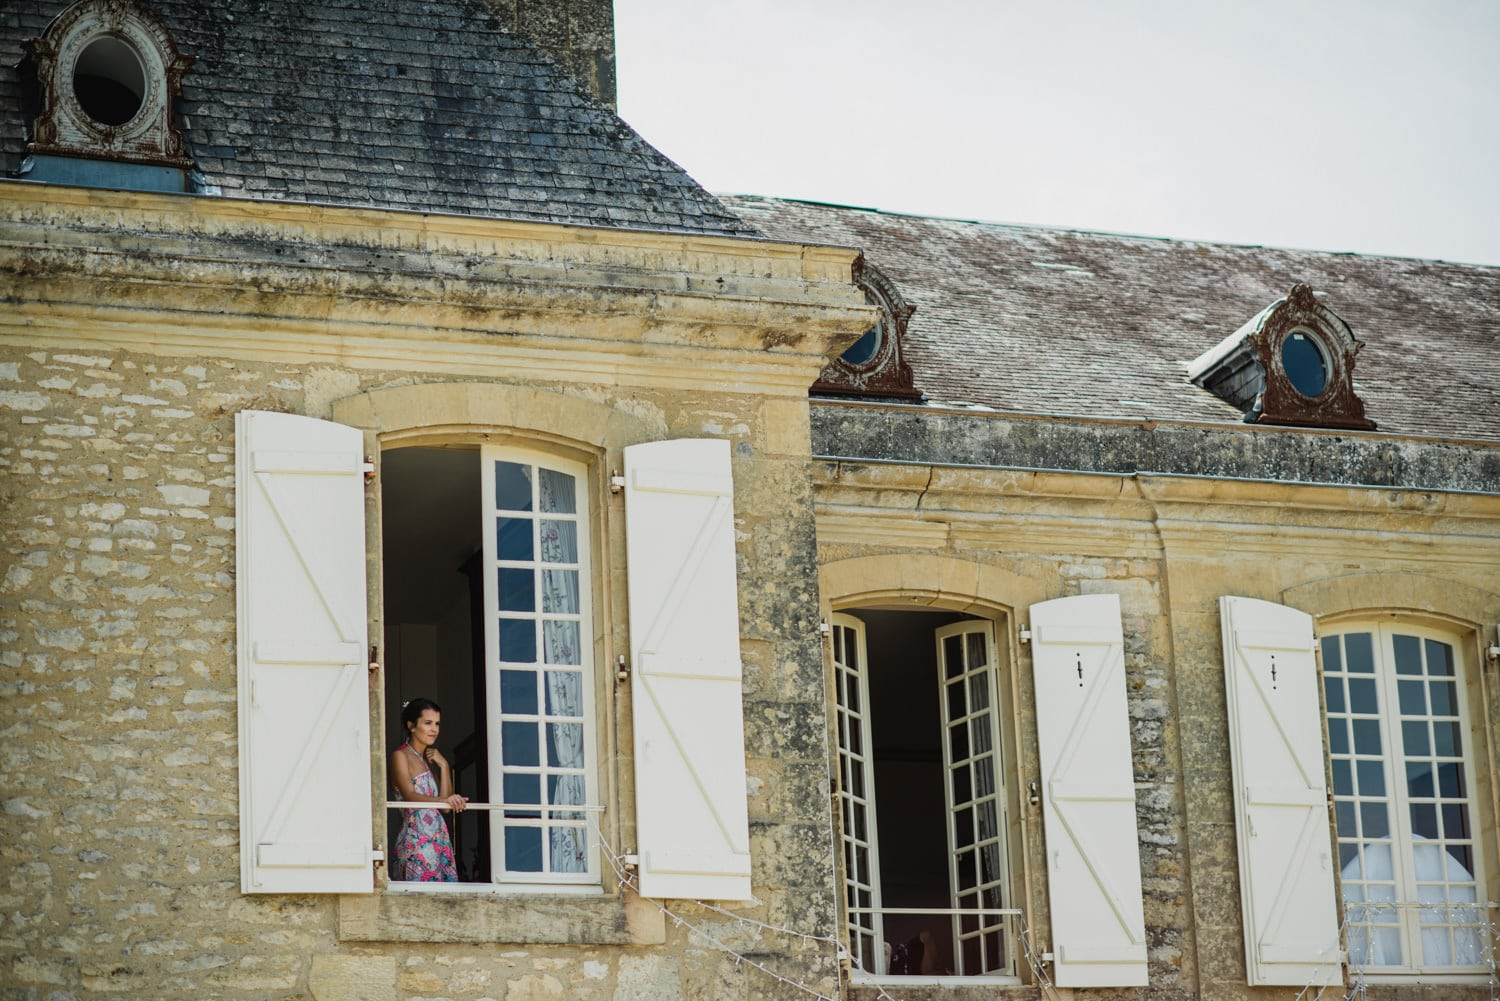 bridesmaid looking out window ar Chateau de Lacoste France